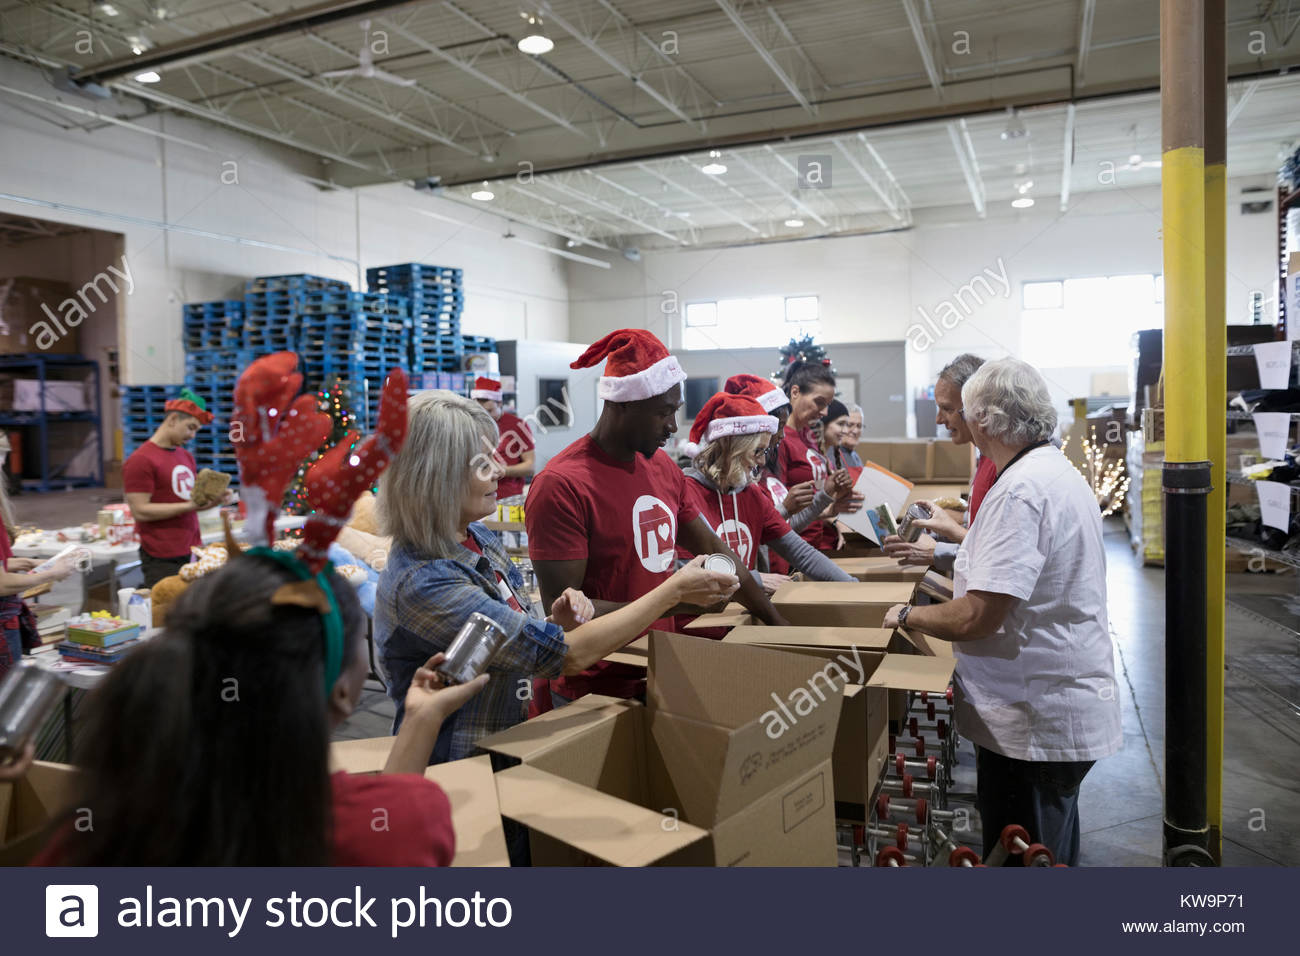 Volunteers in Santa hats filling Christmas donation boxes in warehouse - Stock Image